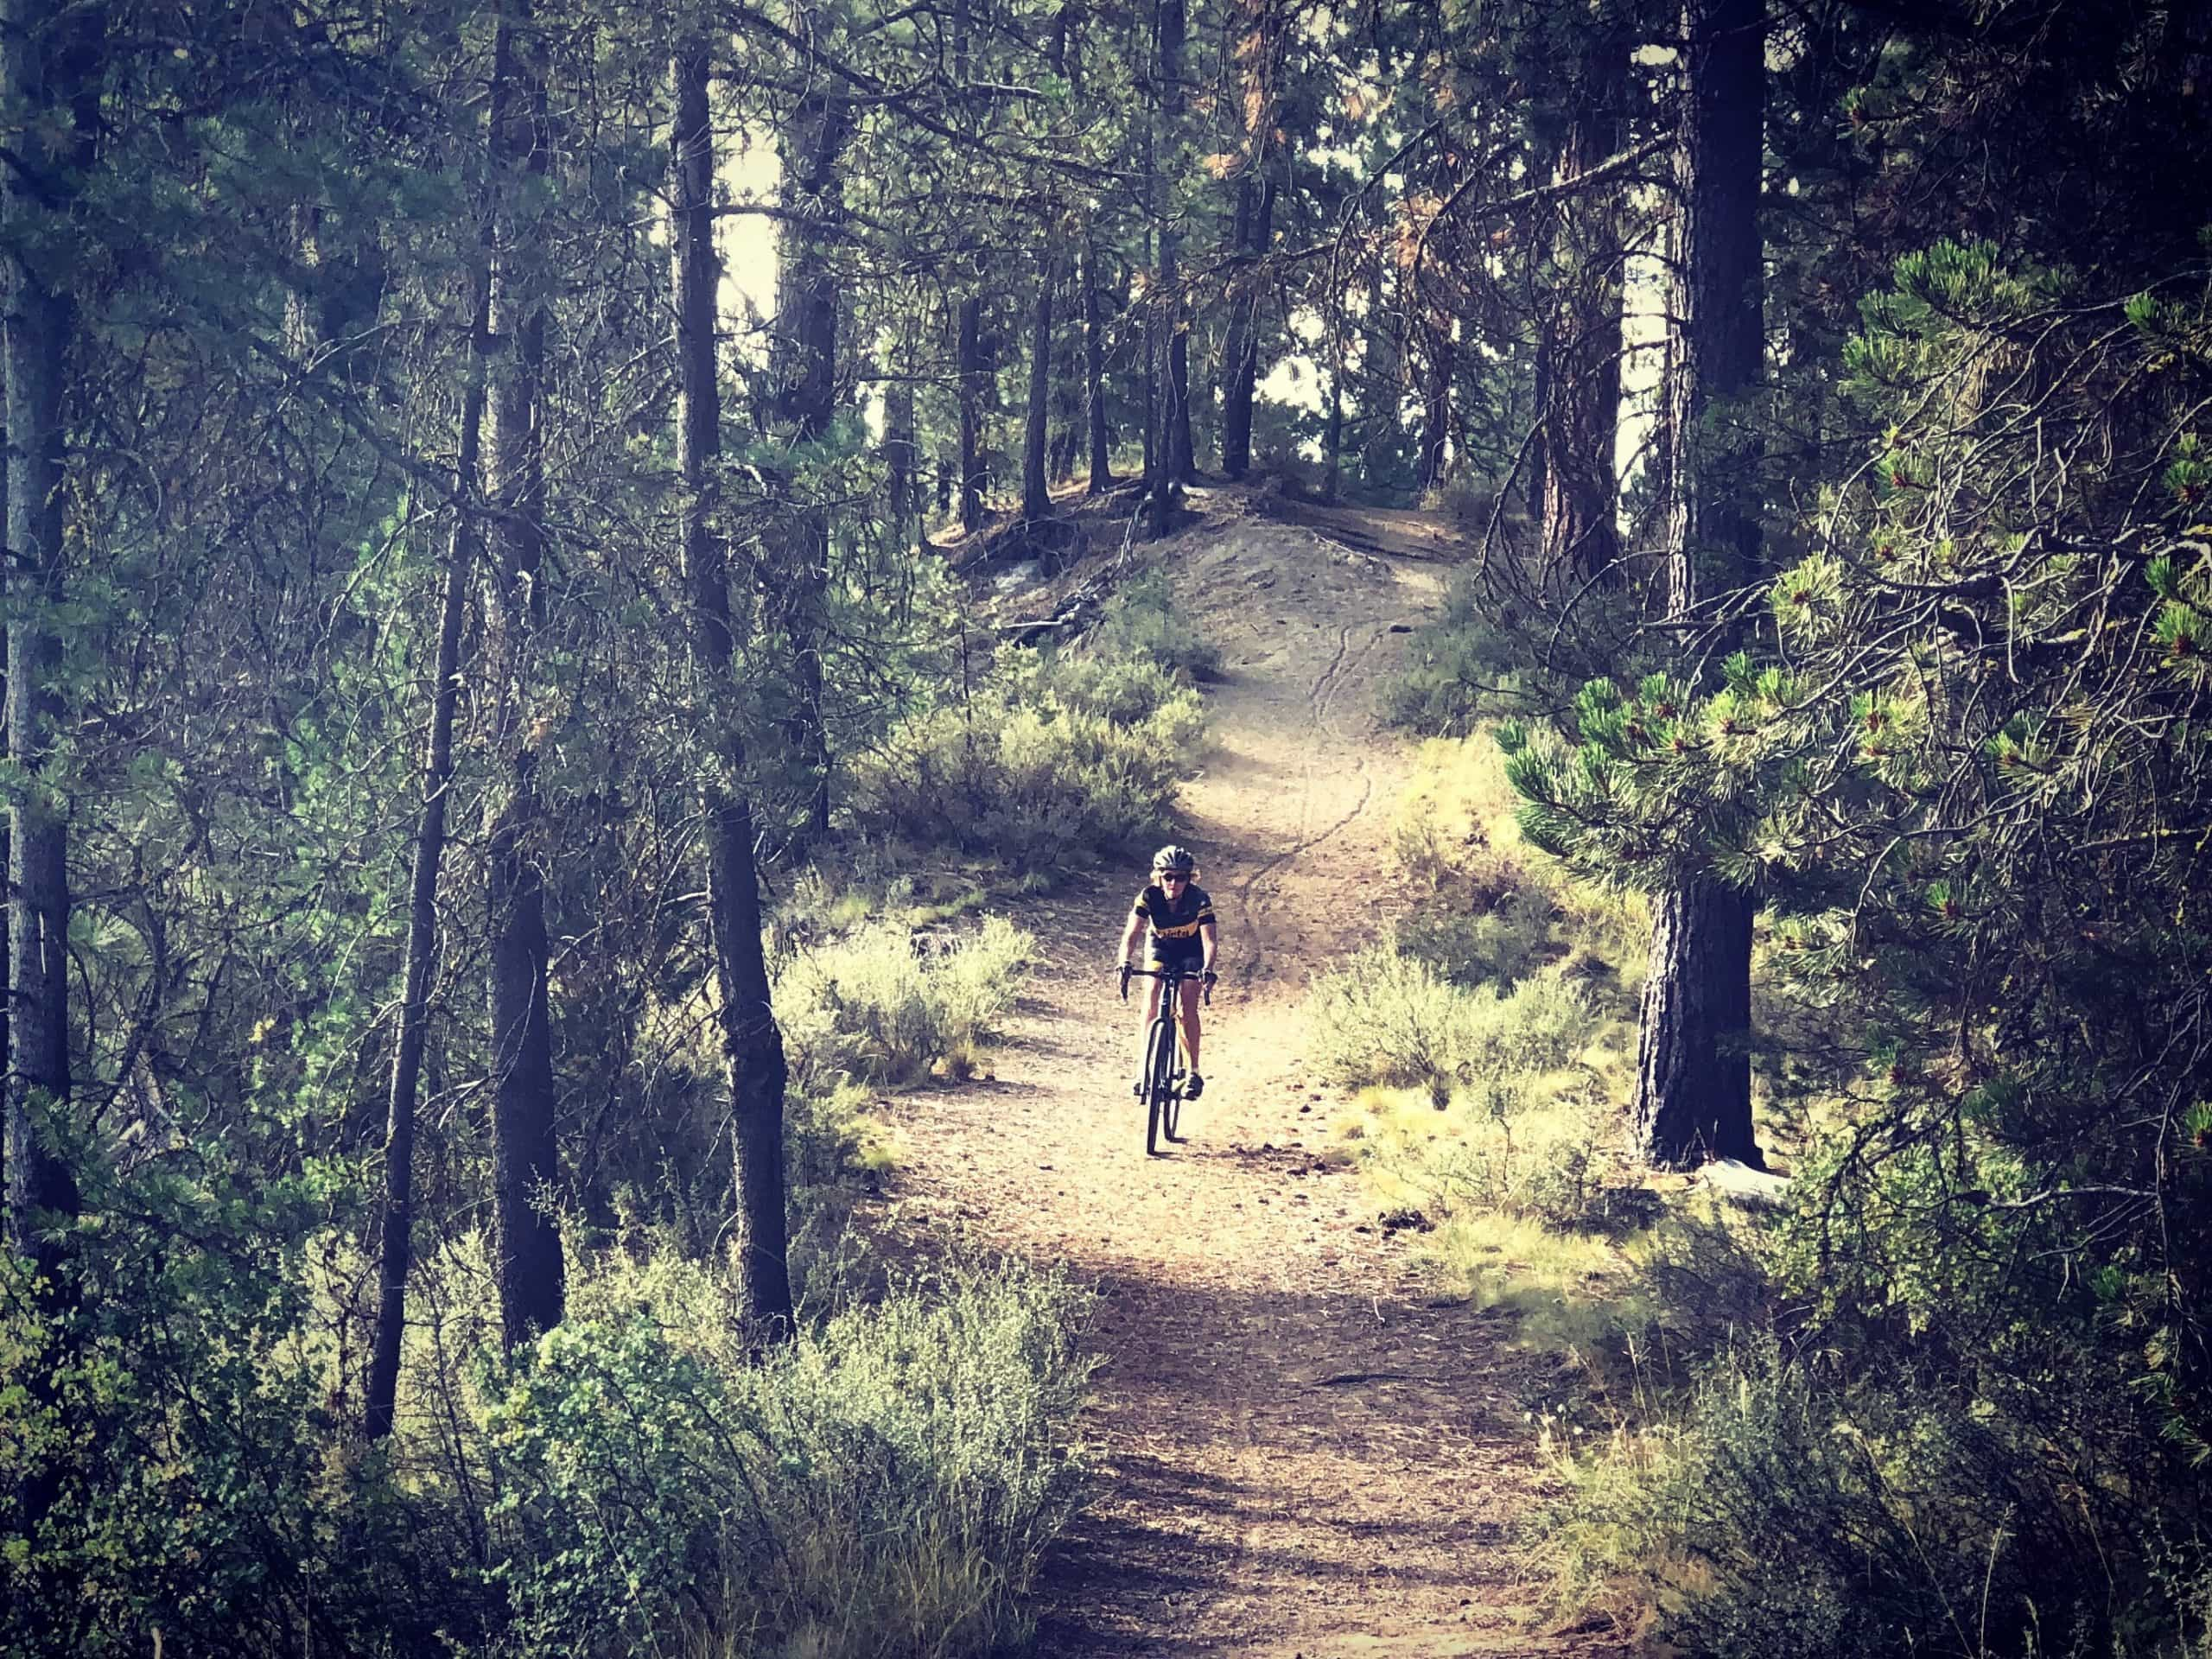 Woman gravel cyclist on dirt trail in LaPine State Park near Sunriver, Oregon.